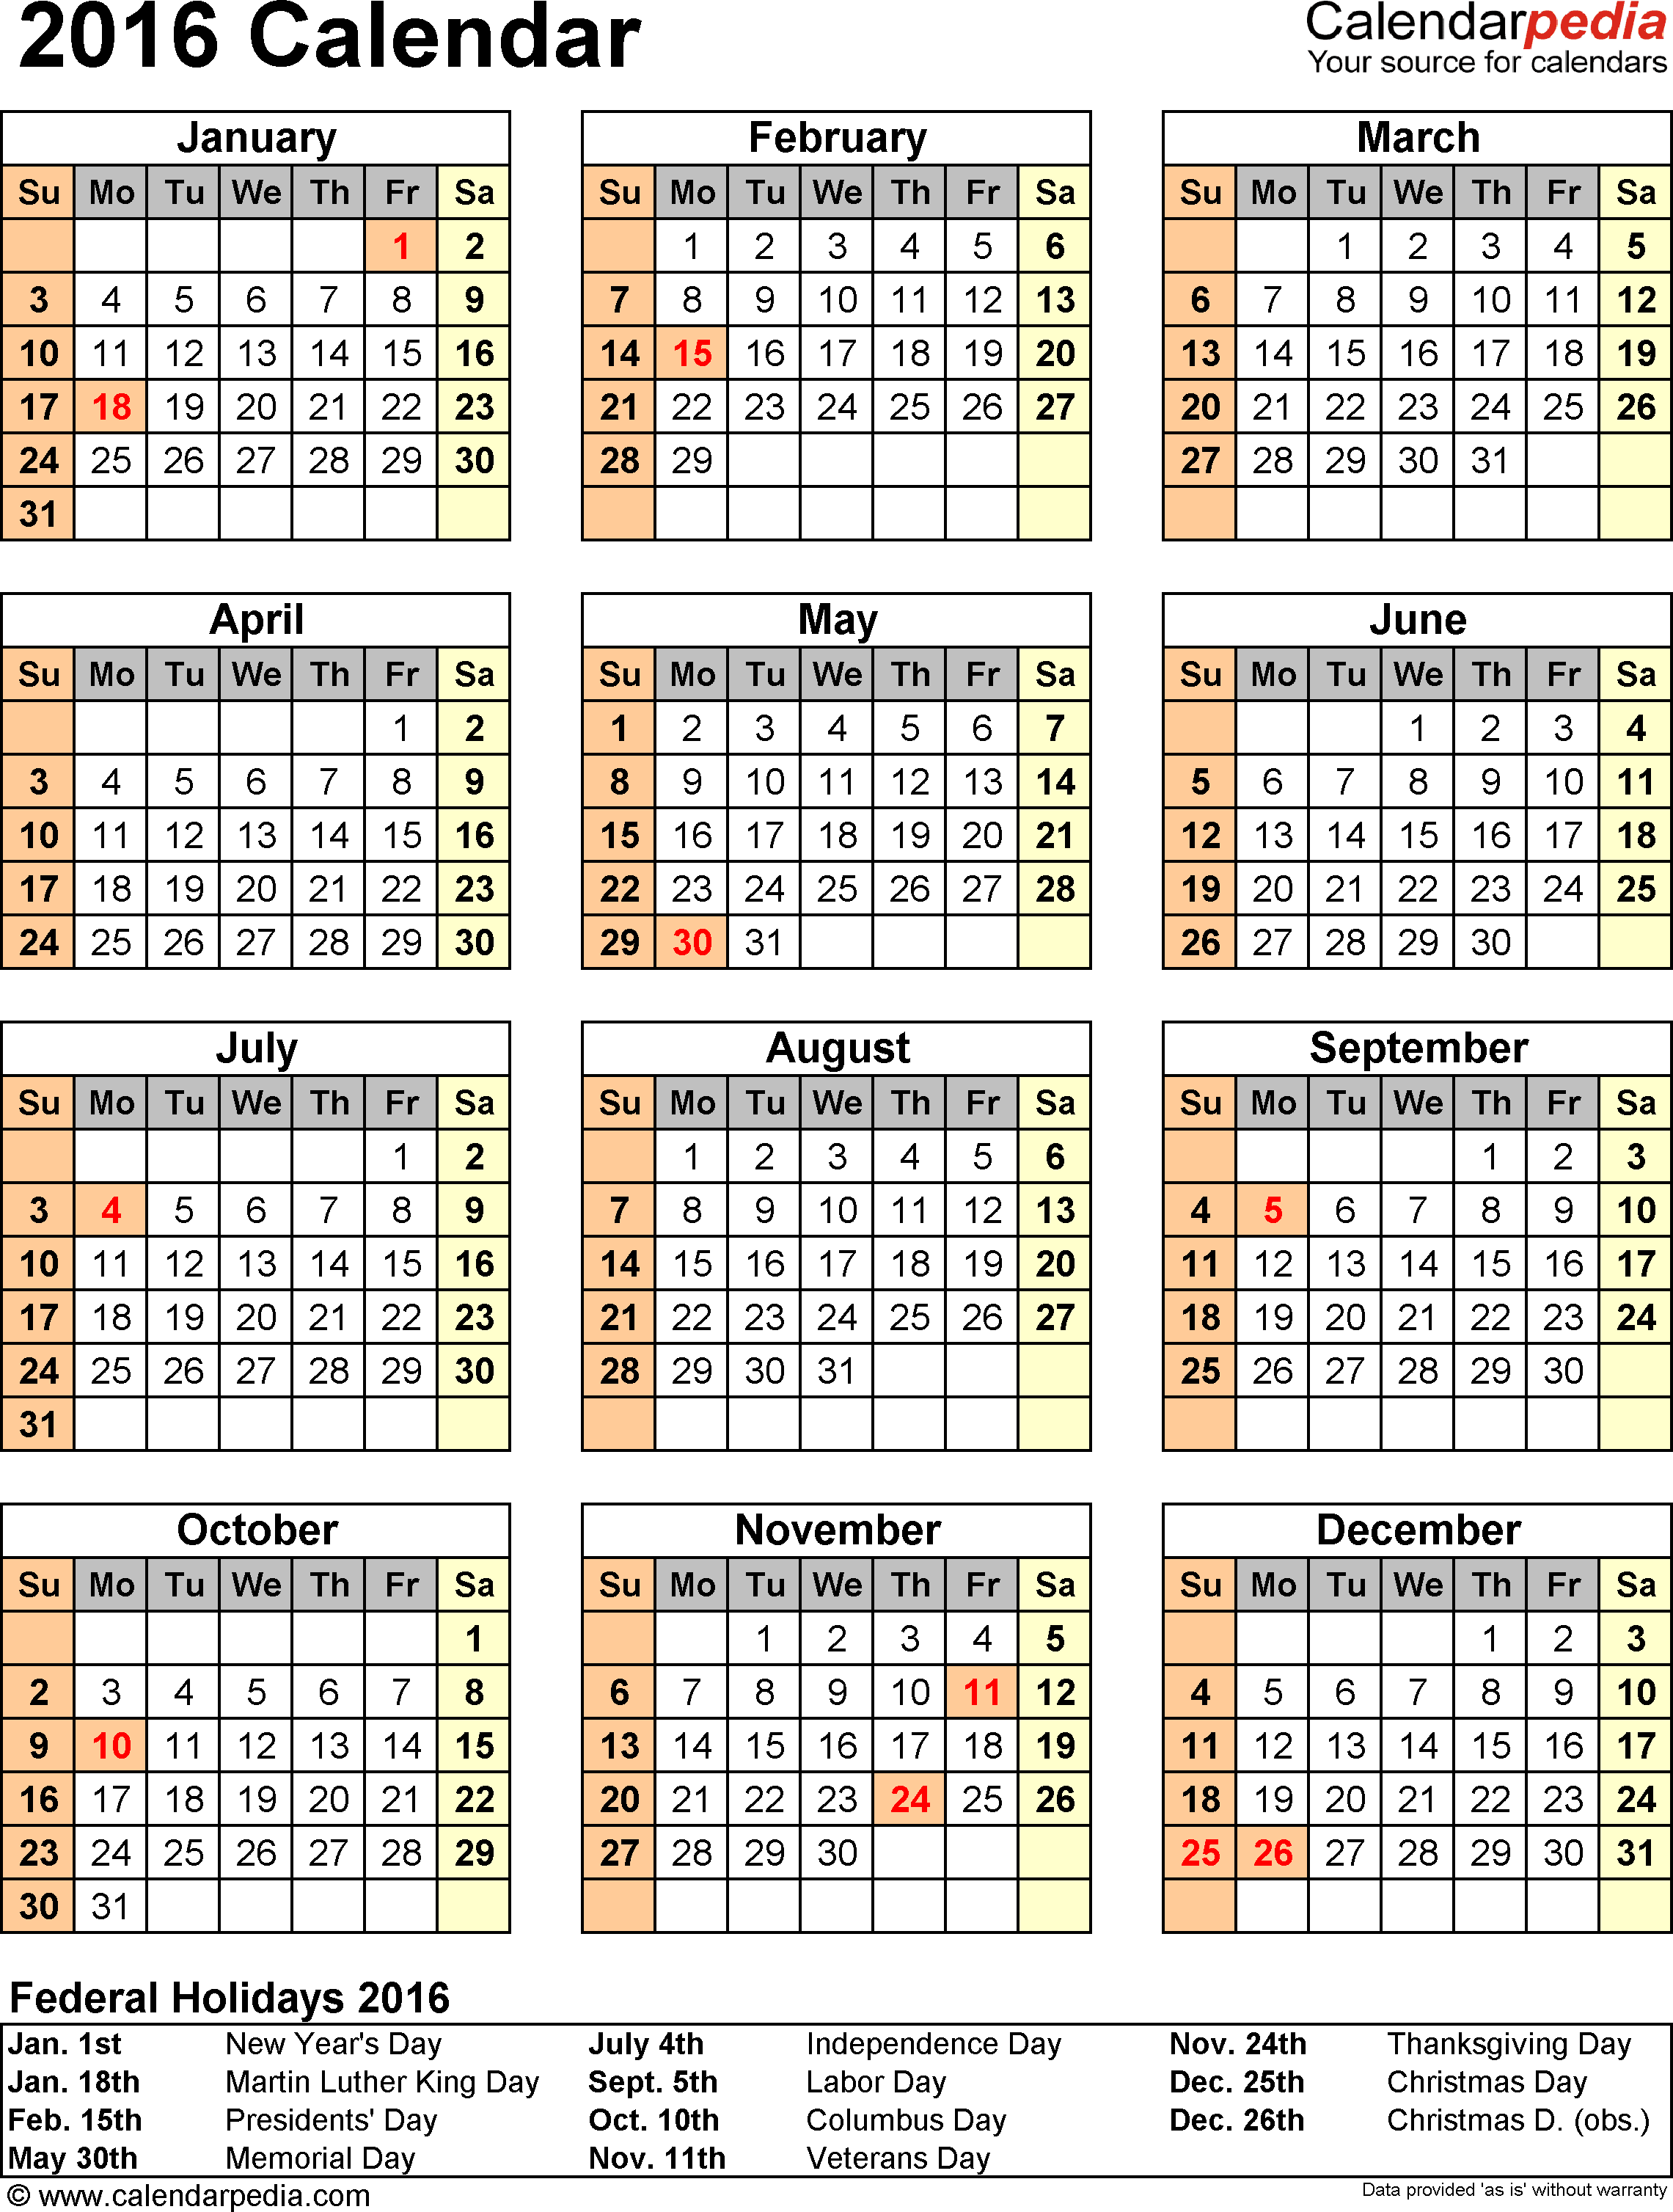 Template 10: 2016 Calendar for Excel, year at a glance, 1 page, portrait orientation